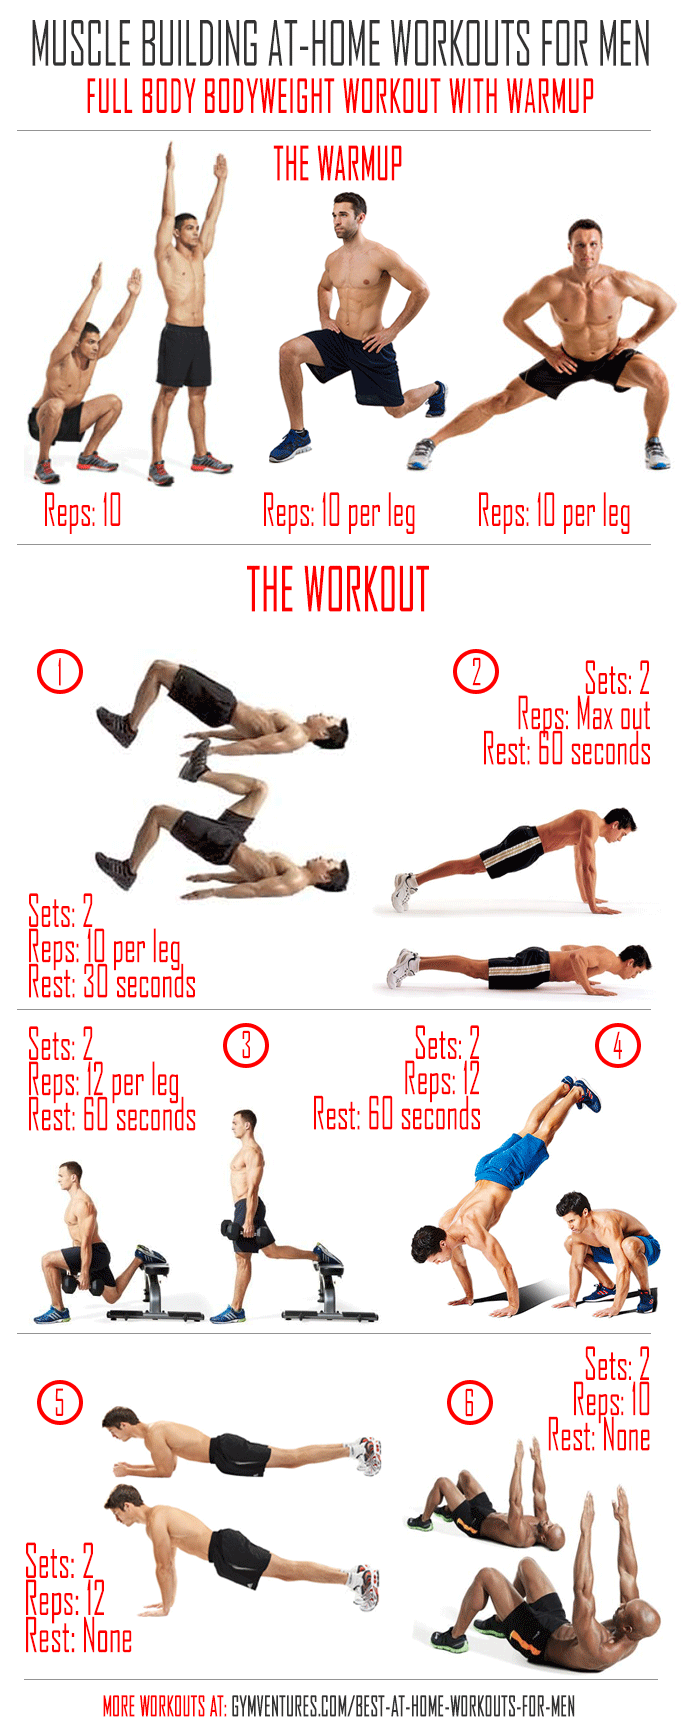 Home Workout Plan For Men choosing among the best at home workouts for men and incorporating